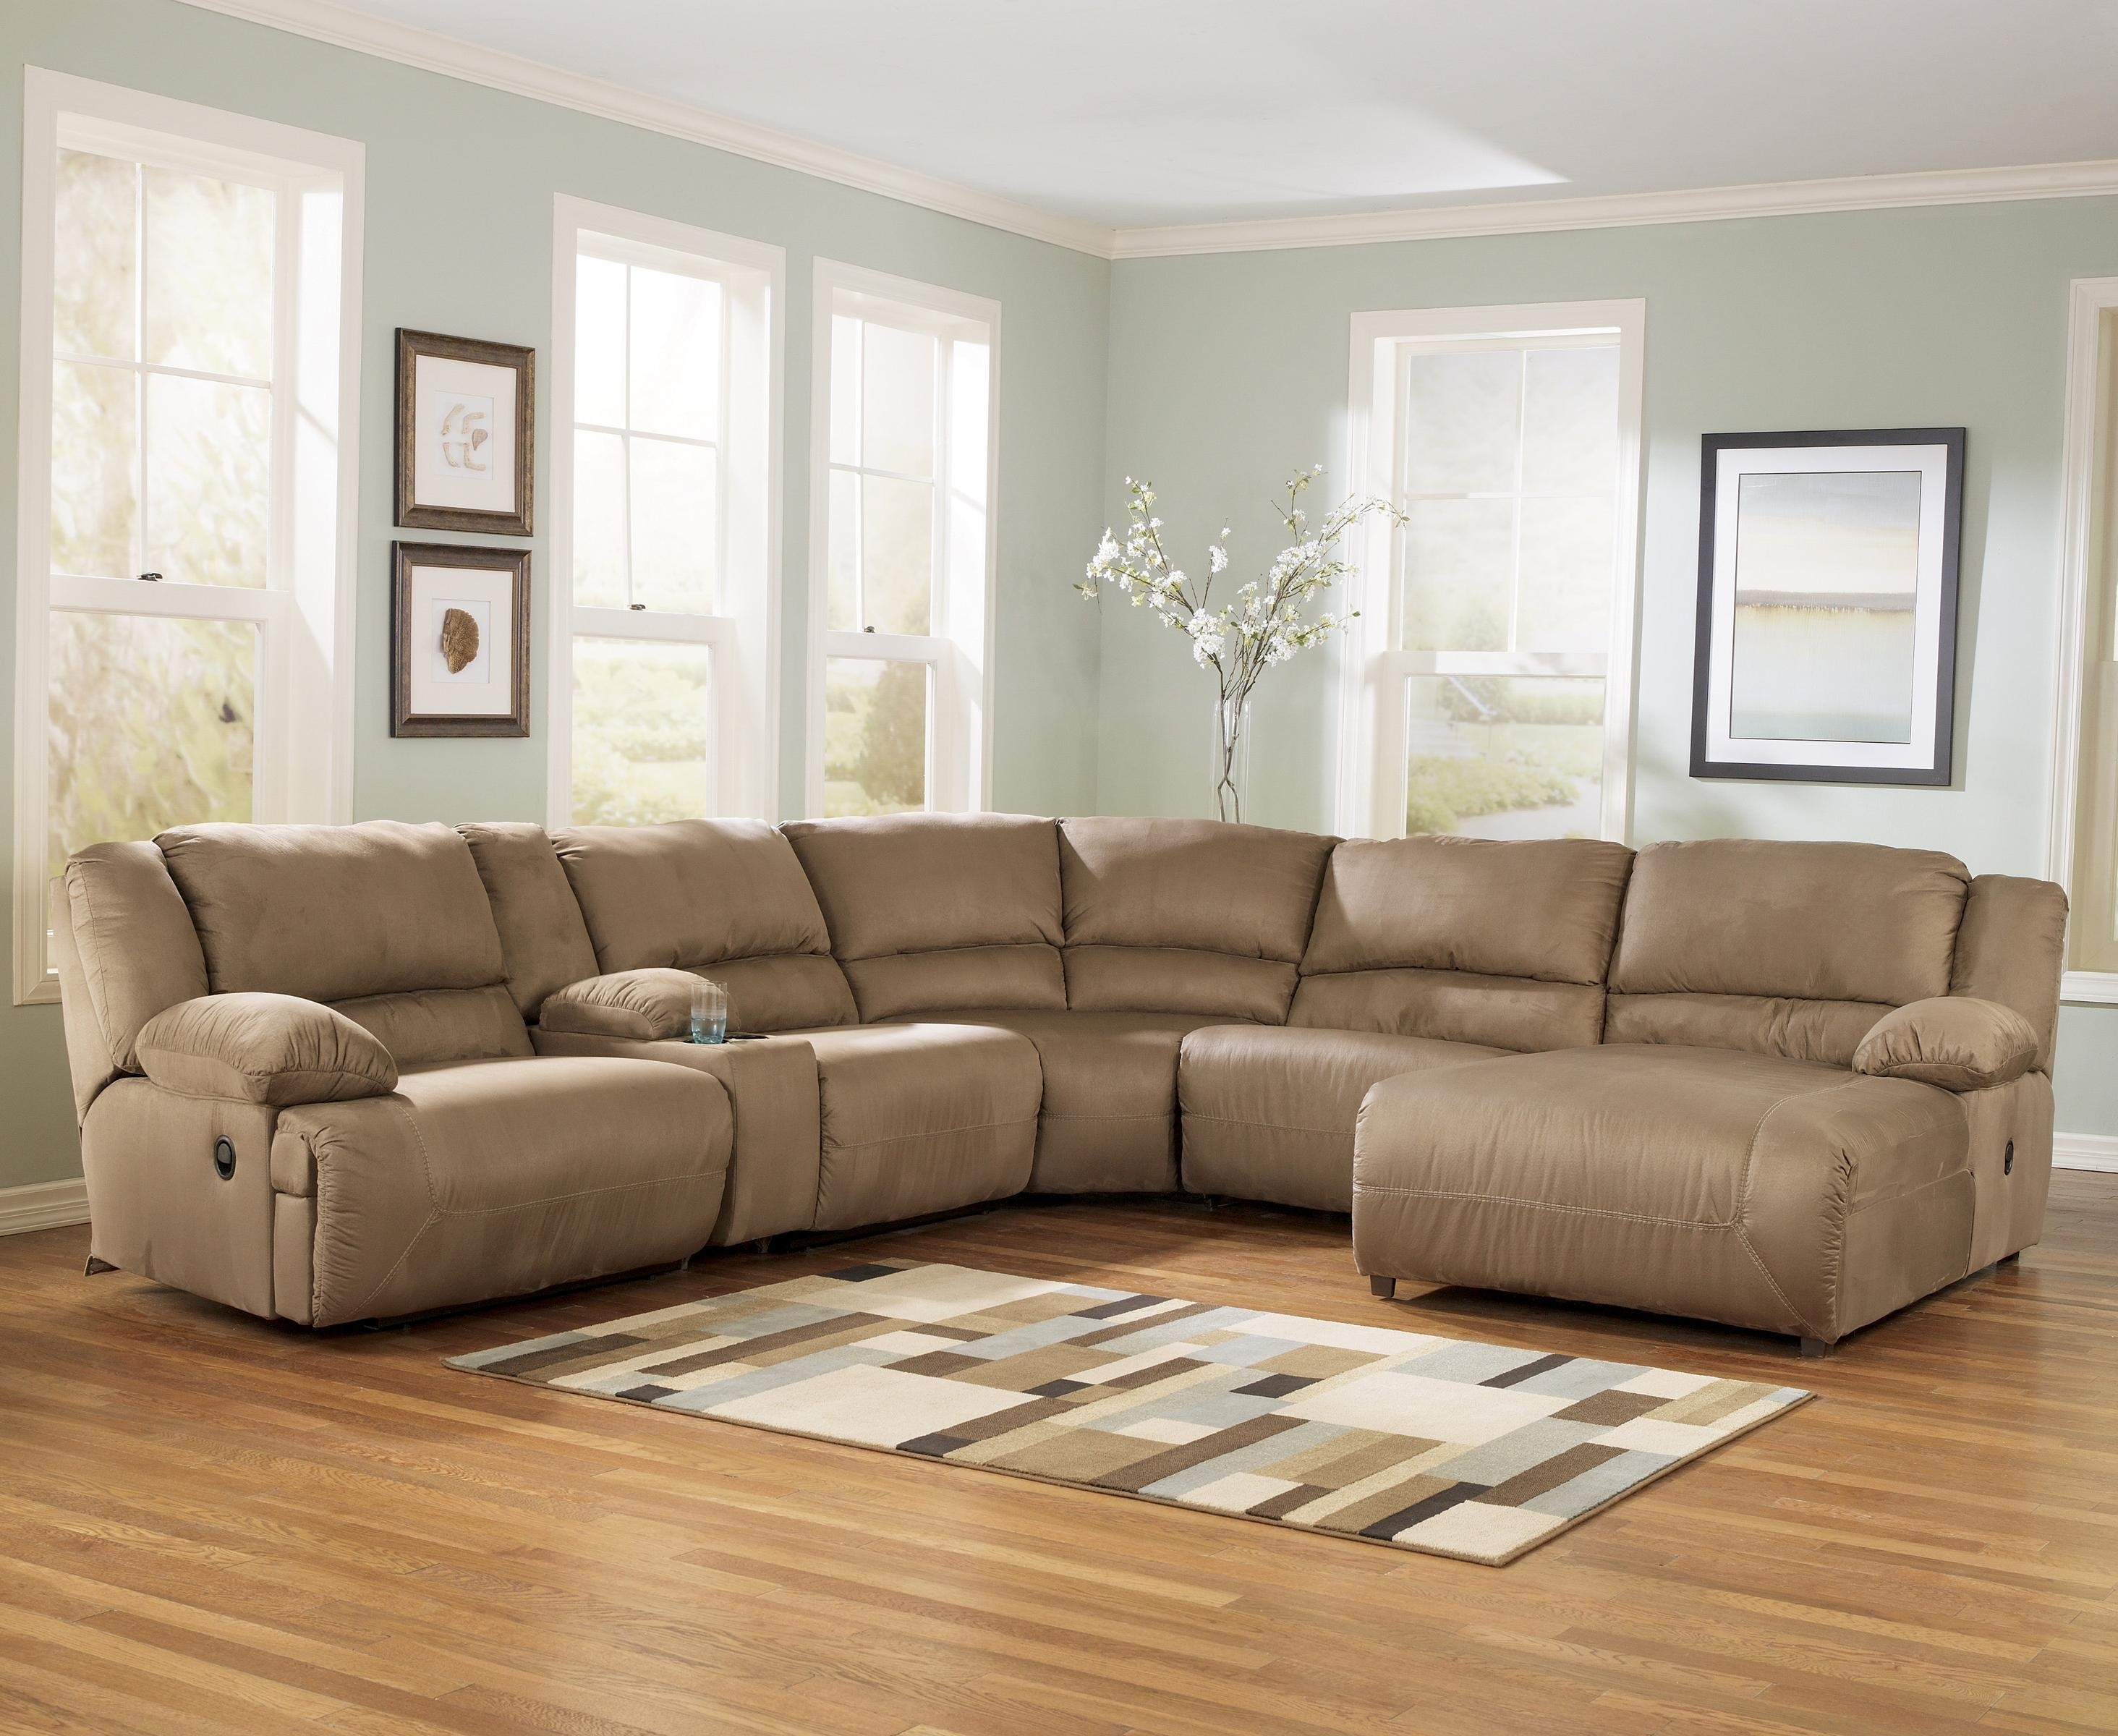 Signature Designashley Hogan – Mocha 6 Piece Motion Sectional Pertaining To Home Furniture Sectional Sofas (View 7 of 10)